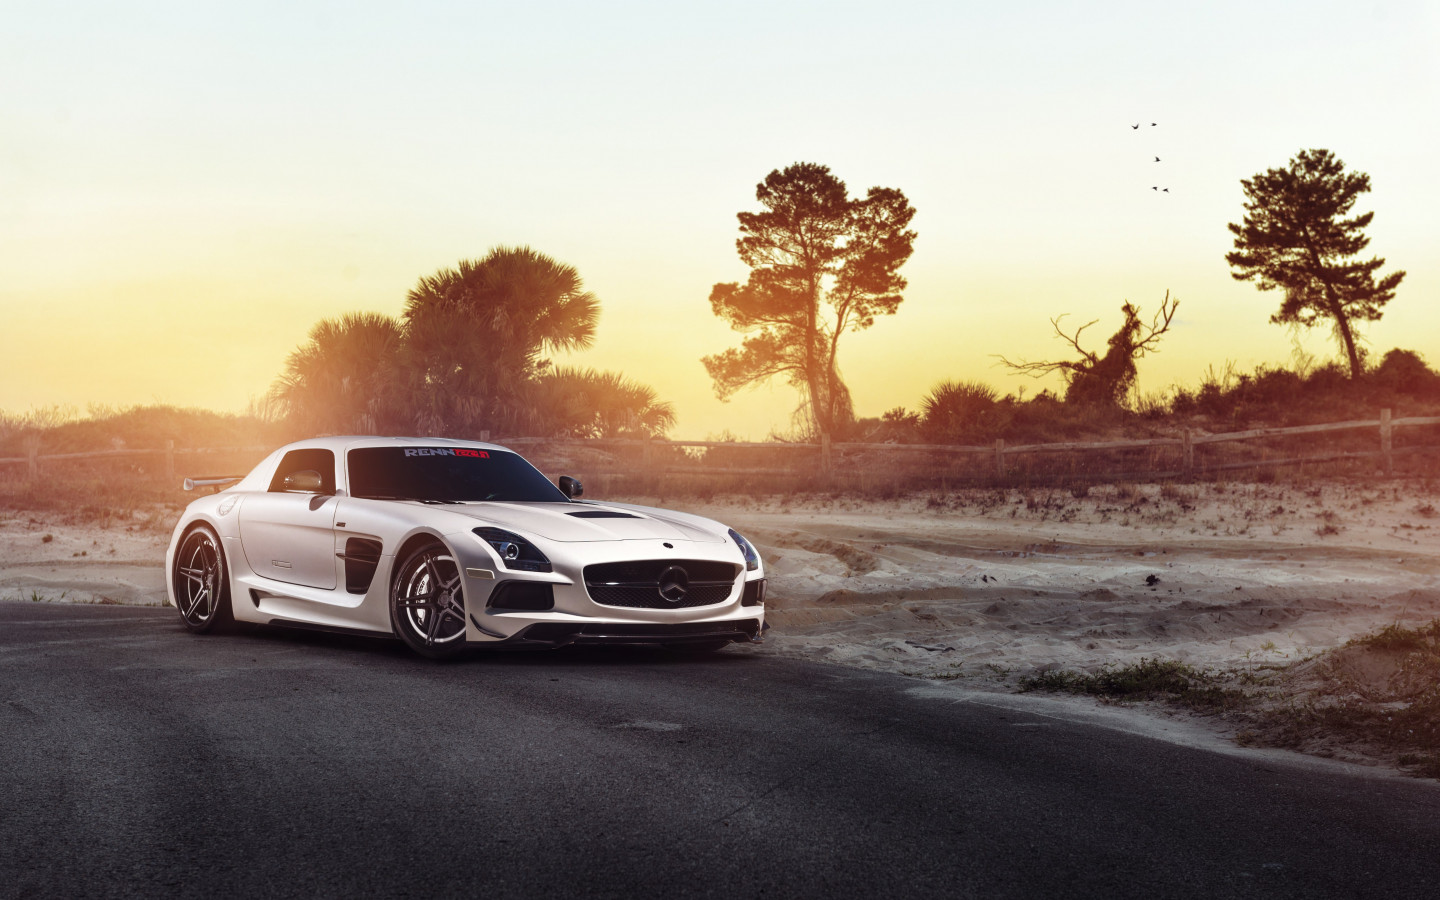 Mercedes SLS wallpaper 1440x900